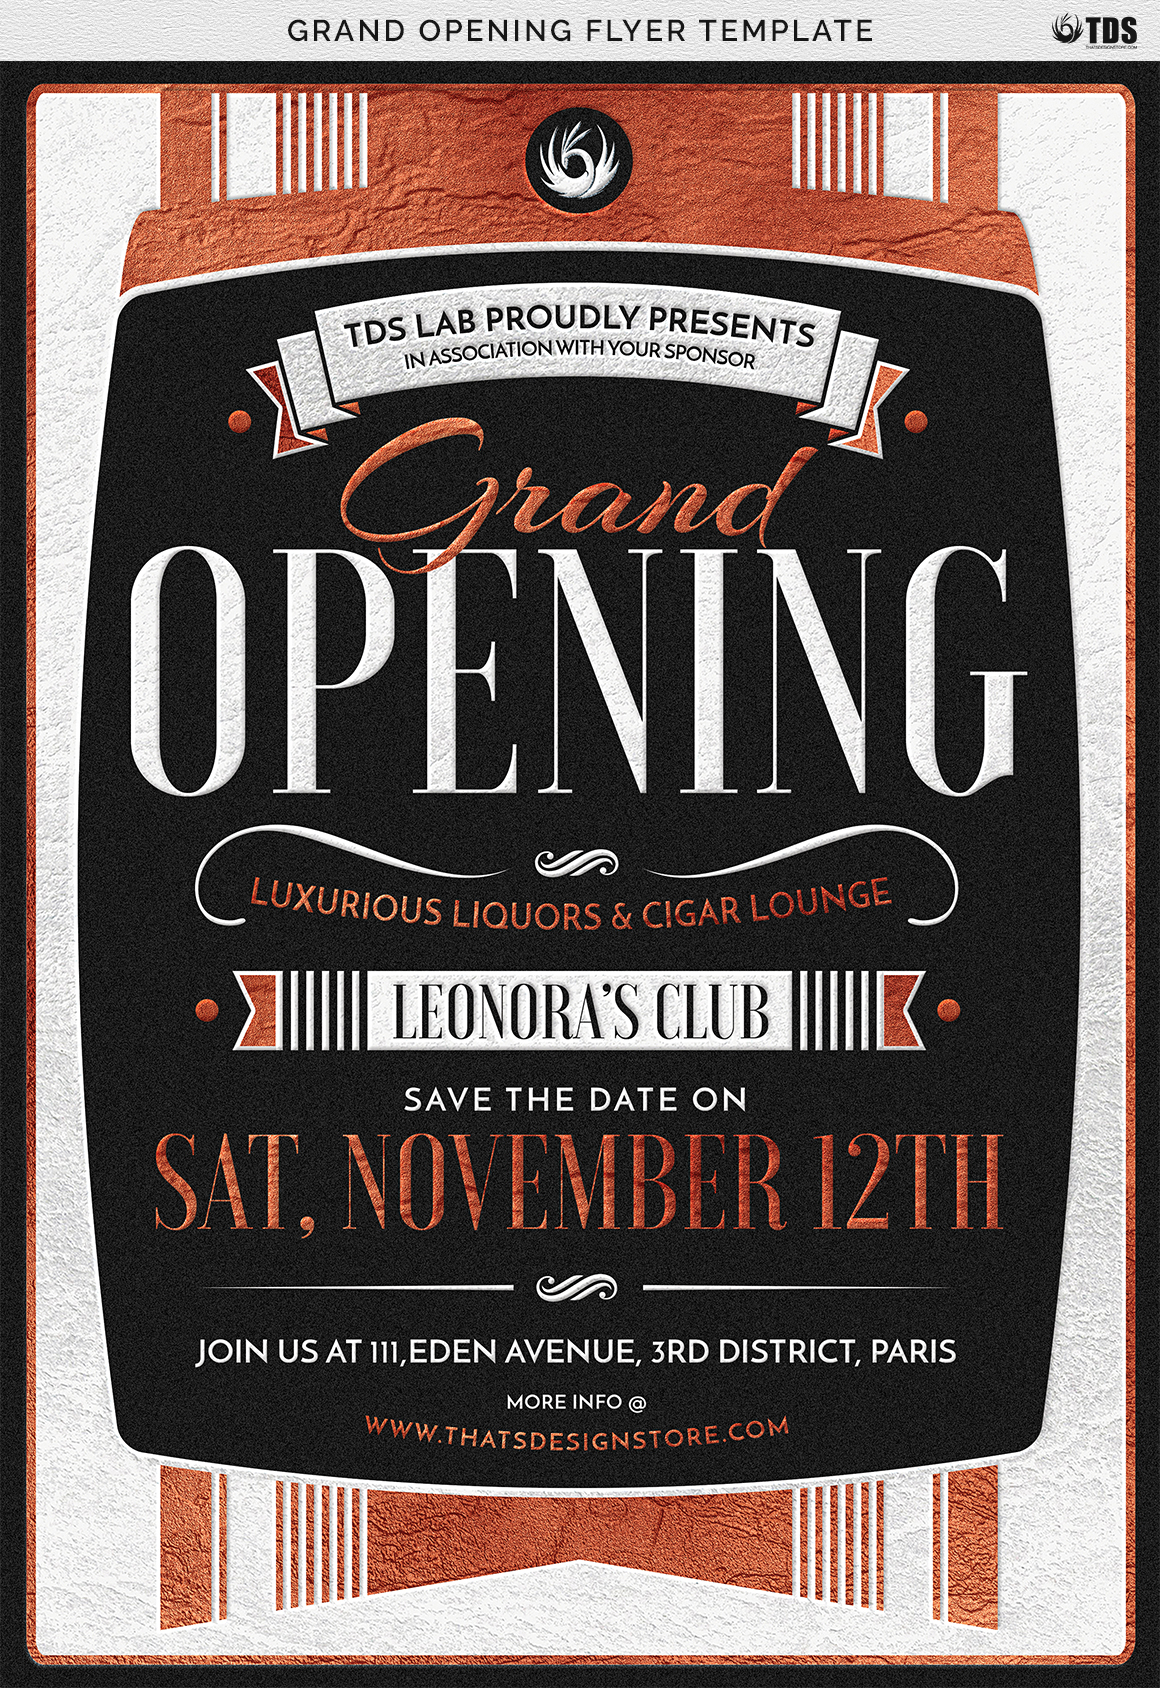 Grand Opening Flyer Template example image 10